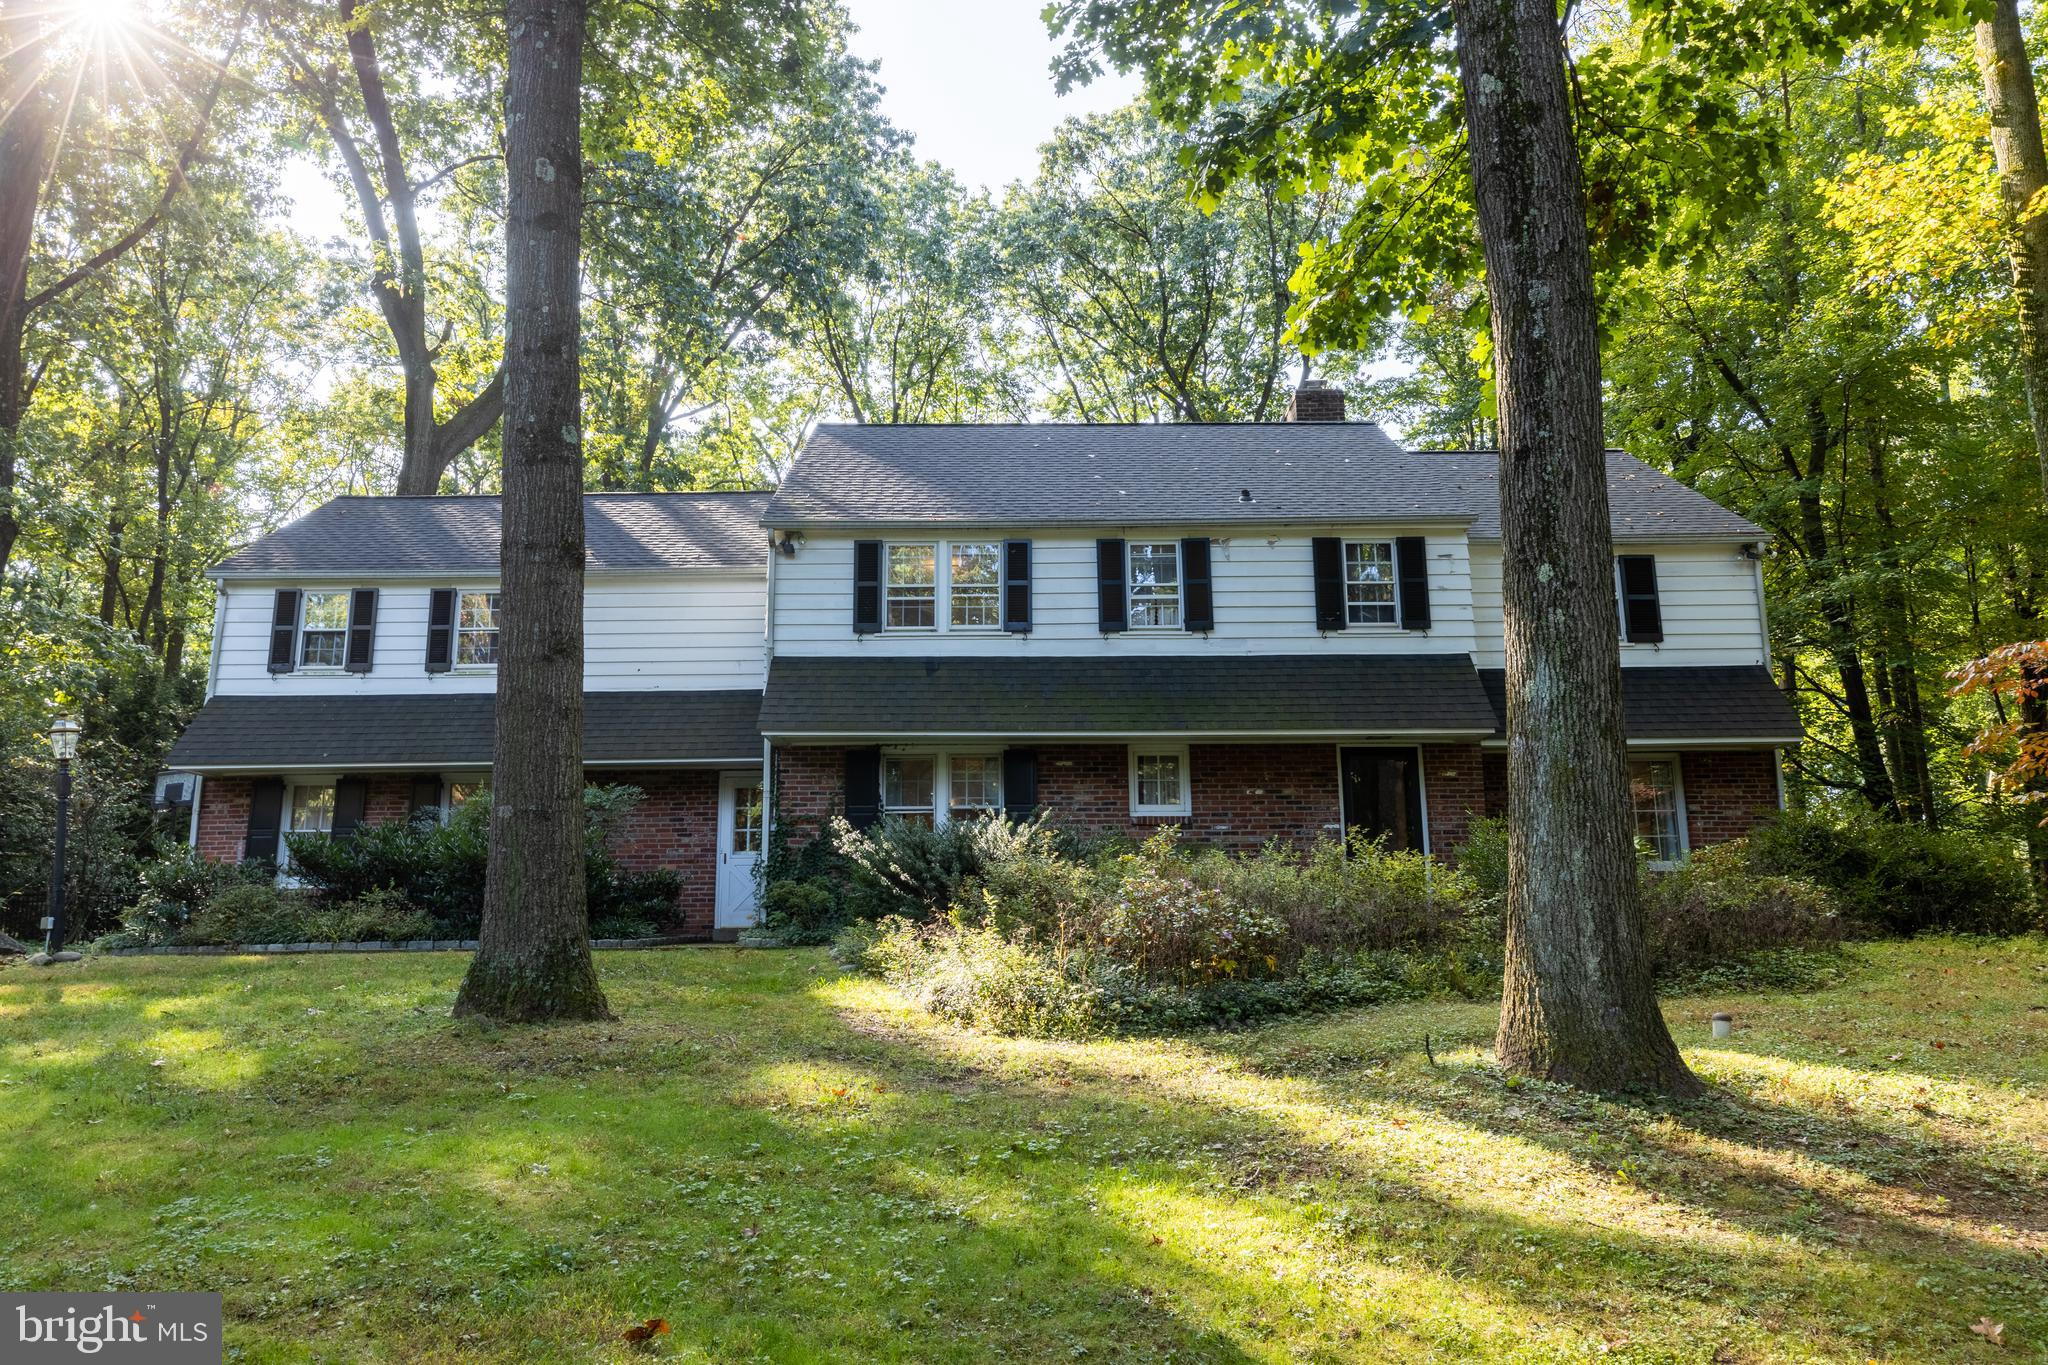 Perched on a sprawling corner lot in sought-after Radnor Township, this classic center-hall brick colonial offers endless potential for buyers eager to customize. The expansive first floor features hardwood floors throughout, abundant natural light and ample space for entertaining and relaxation. Just off the bright and airy foyer sits a spacious living room with fireplace and French doors leading to the large back patio. The living room connects to a cozy home office with custom built-ins and beautiful backyard views. On the opposite side of the first floor, you'll find a sunny eat-in kitchen with plentiful cabinetry and counter space, plus a window wall atop a double sink. For maximum convenience, the kitchen also boasts direct access to the attached garage. A powder room and generously sized dining room with chair rail completes this traditional first floor. Hardwood floors continue throughout the upstairs level, which features five well-sized bedrooms, three full bathrooms, plenty of closet space and a rear stairway leading directly to the kitchen. The second floor also includes closeted access to an unfinished attic that could be converted to a bonus room, home gym or play space. The finished lower-level features floor-to-ceiling built-ins and a large laundry room with utility sink. The fenced-in backyard is complete with brick patio framed by a pergola and an in-ground pool, perfect for lazy summer days. Homes on this friendly, tree lined street are zoned for nationally ranked Radnor Township School District. Offering plenty of privacy plus easy access to major roadways, downtown Wayne and other Main Line hot spots, this home is ready for your vision and personal touch. Please note, any needed repairs are included in list price. This house needs some TLC, which is reflected in the price.  This is a great opportunity for you to purchase a good home and make changes for a good value. Please note that Delaware County is conducting a real estate tax assessment eff